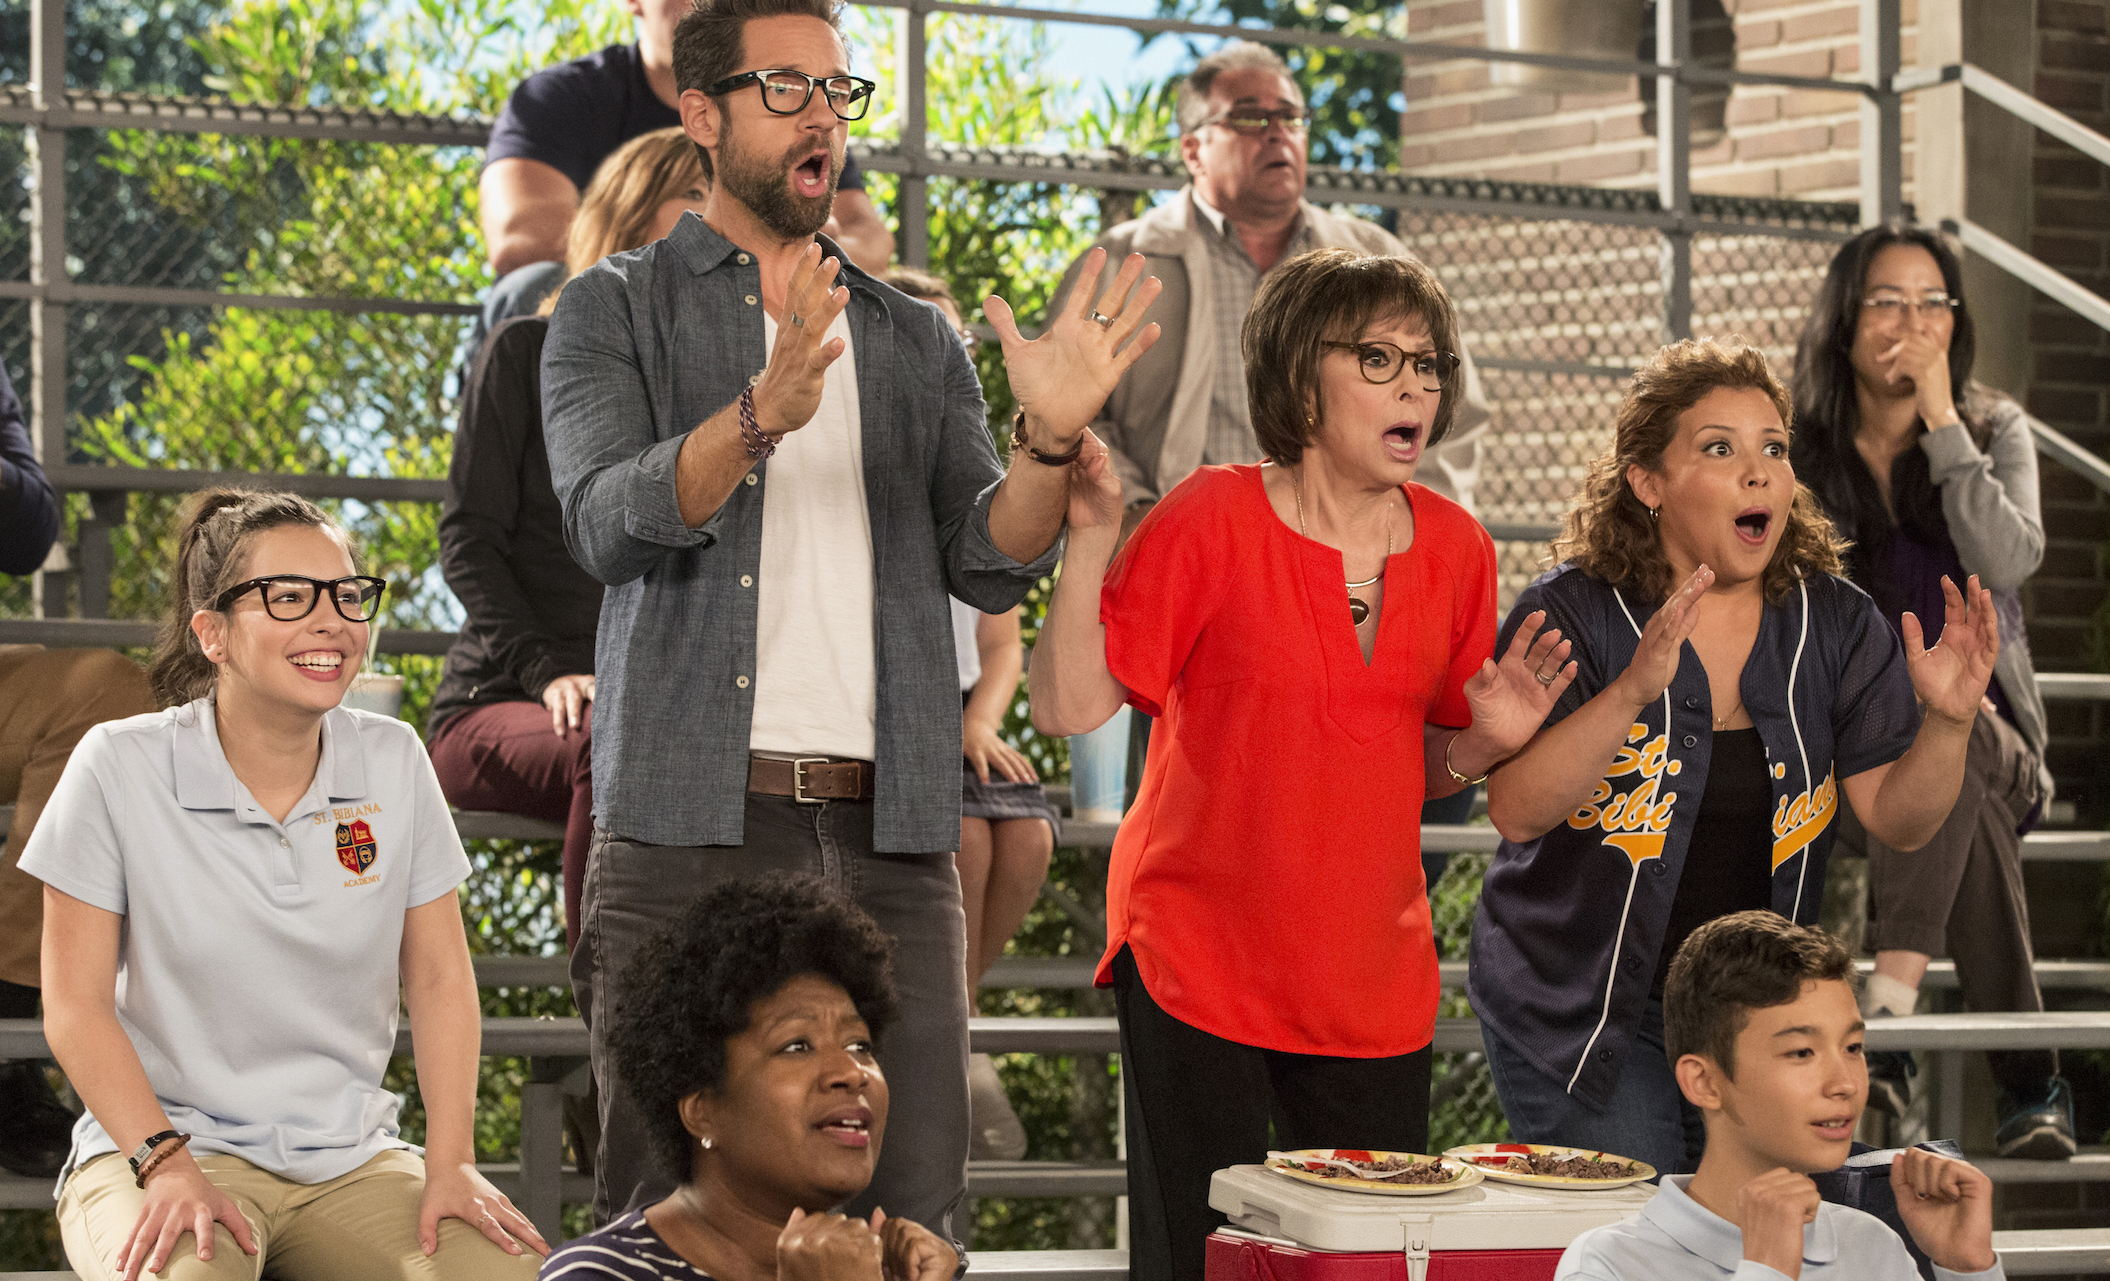 'One day at a time' tendrá una nueva temporada… pero no en Netflix